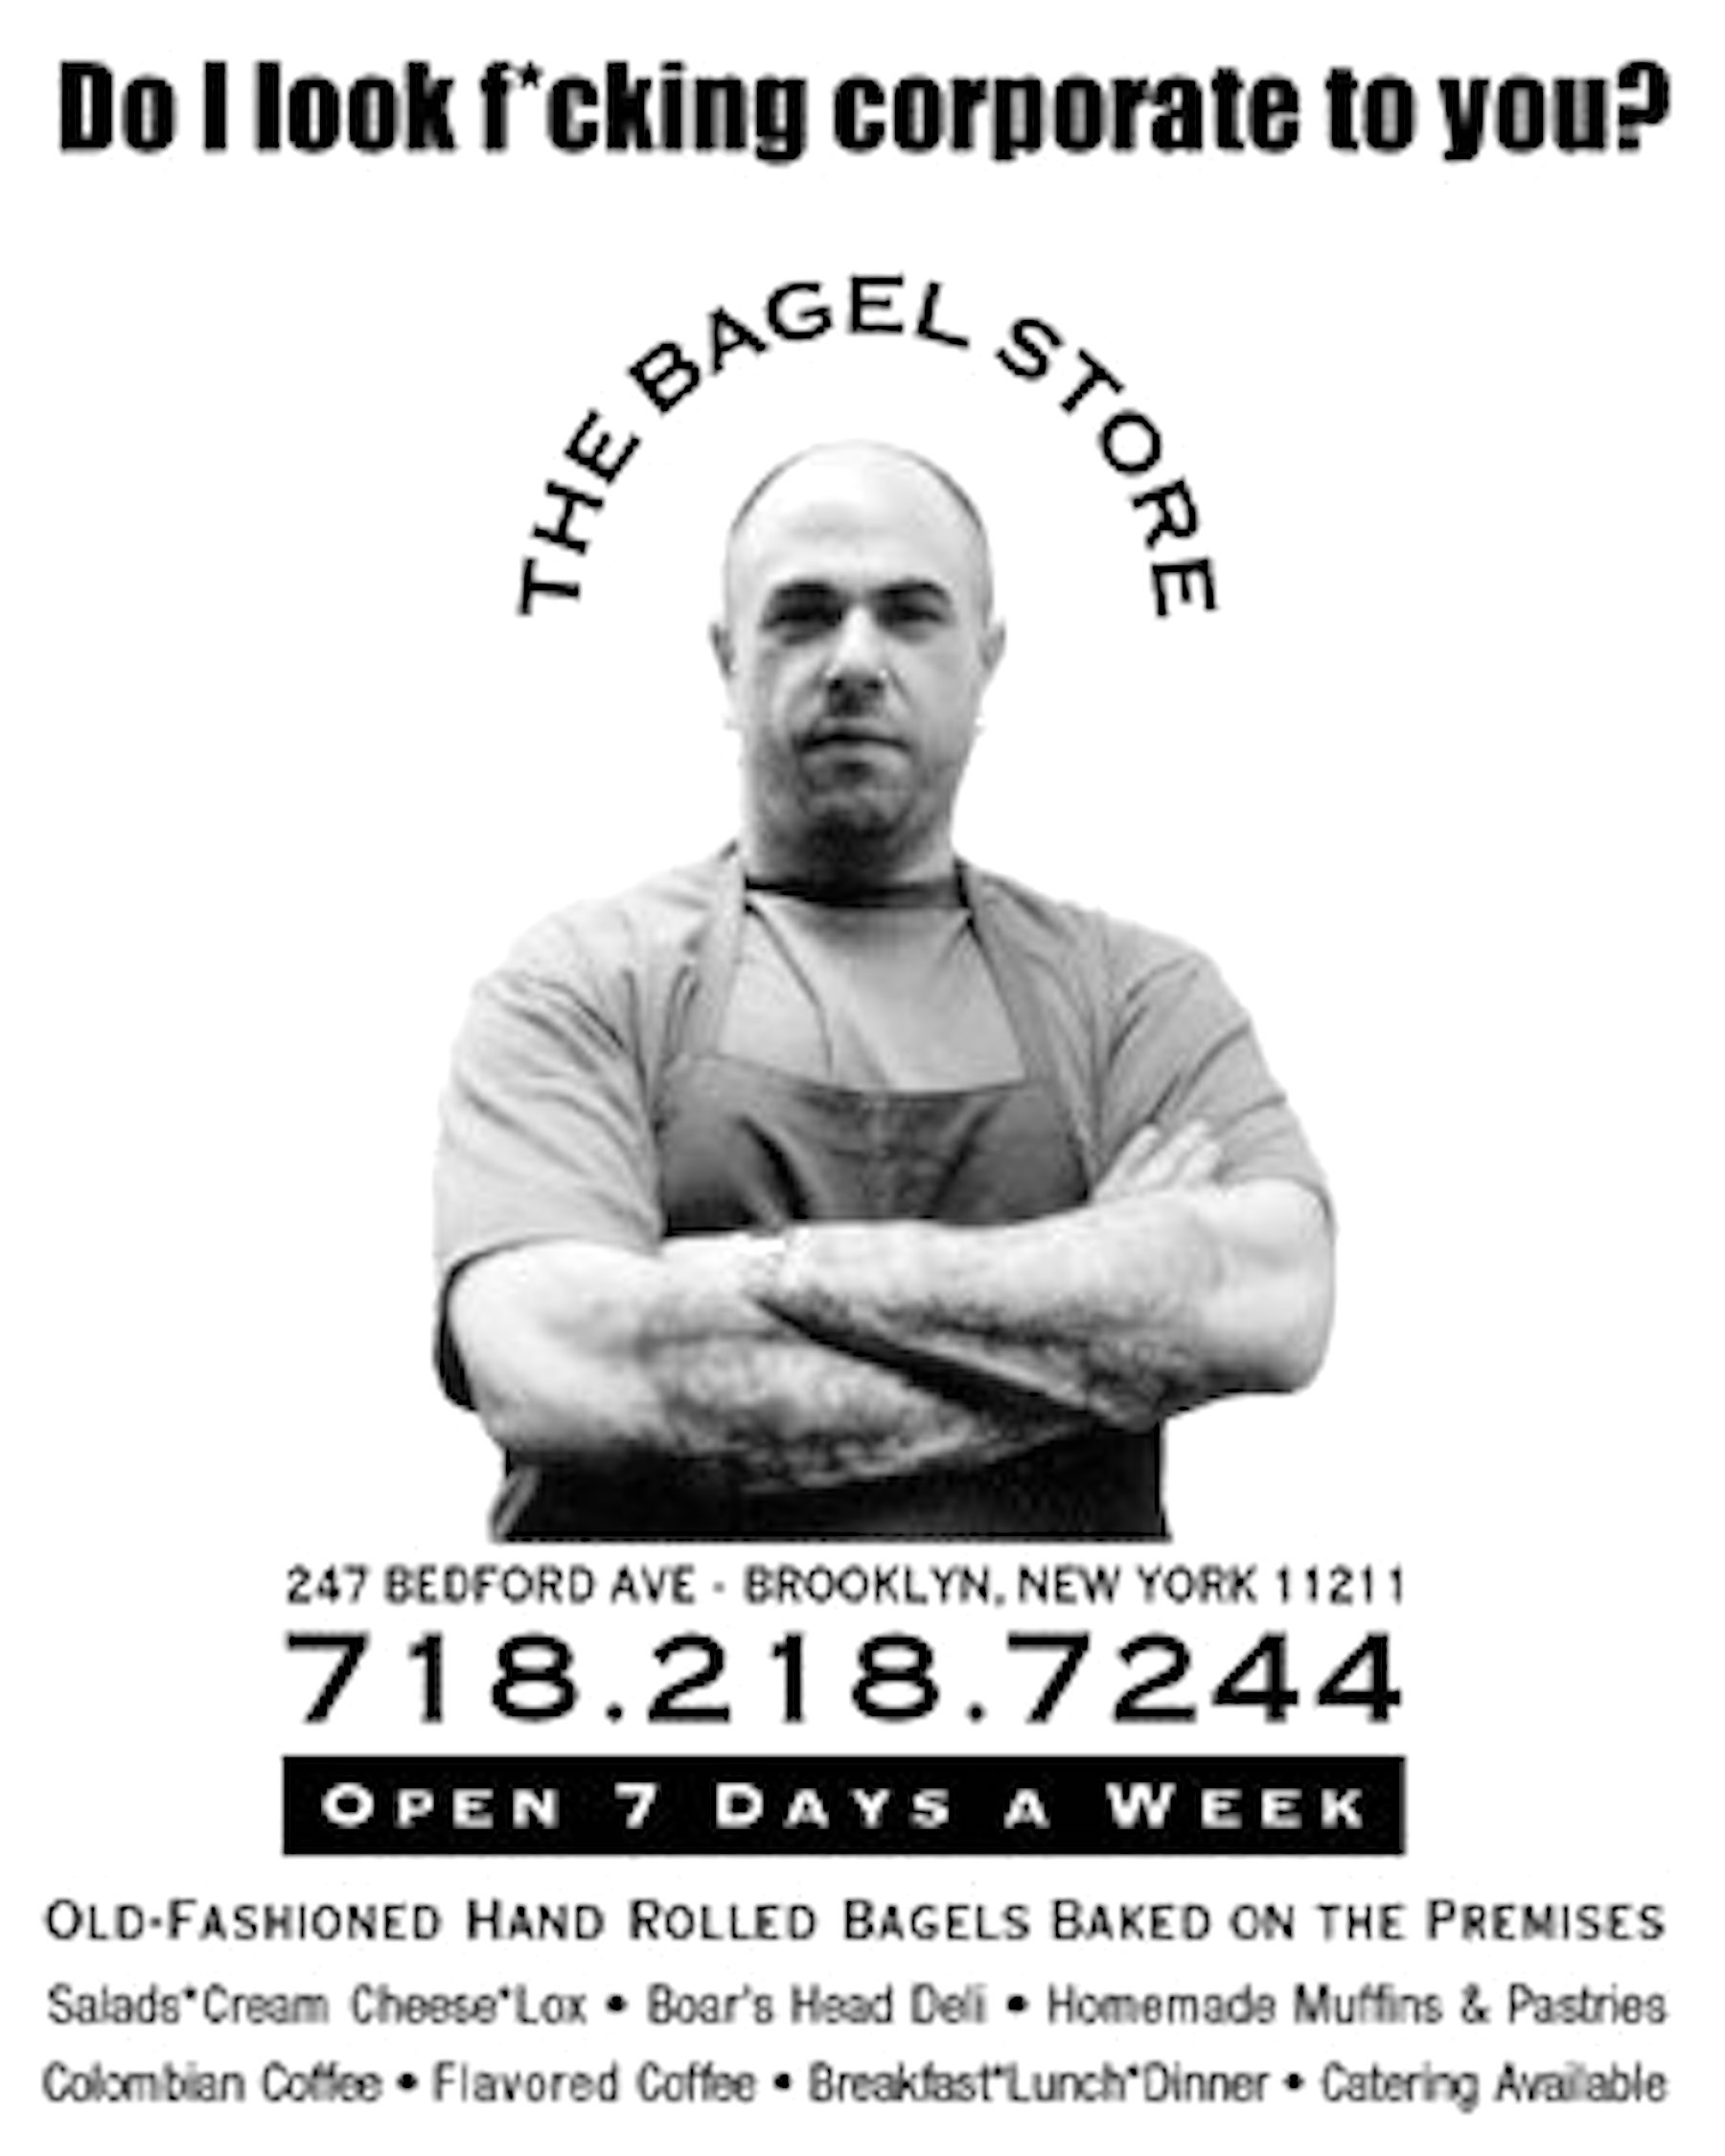 The Bagel Store (corporate to you)